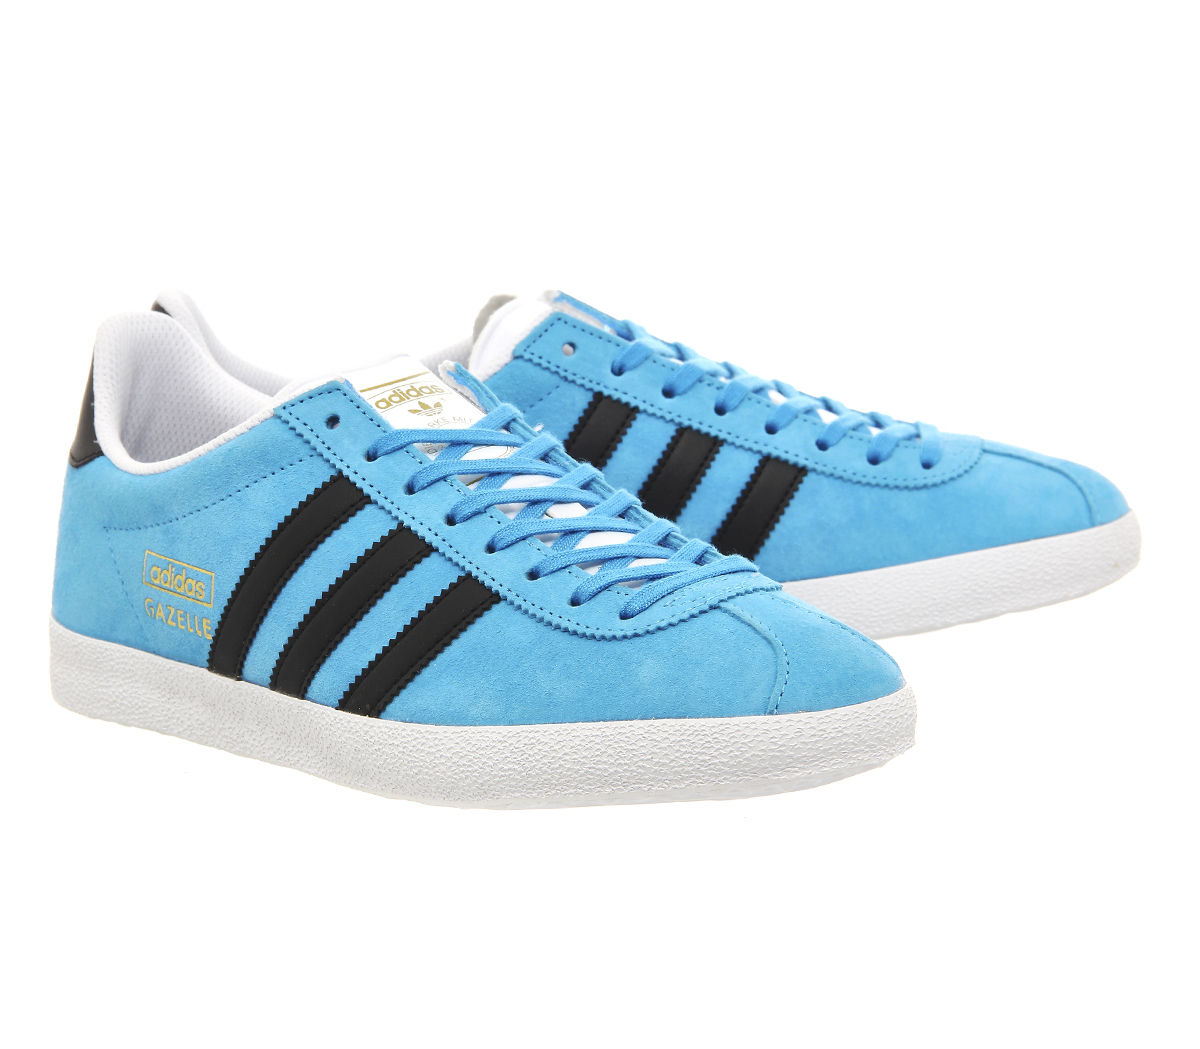 Adidas Gazelle Og Sneakers In White For Men Lyst